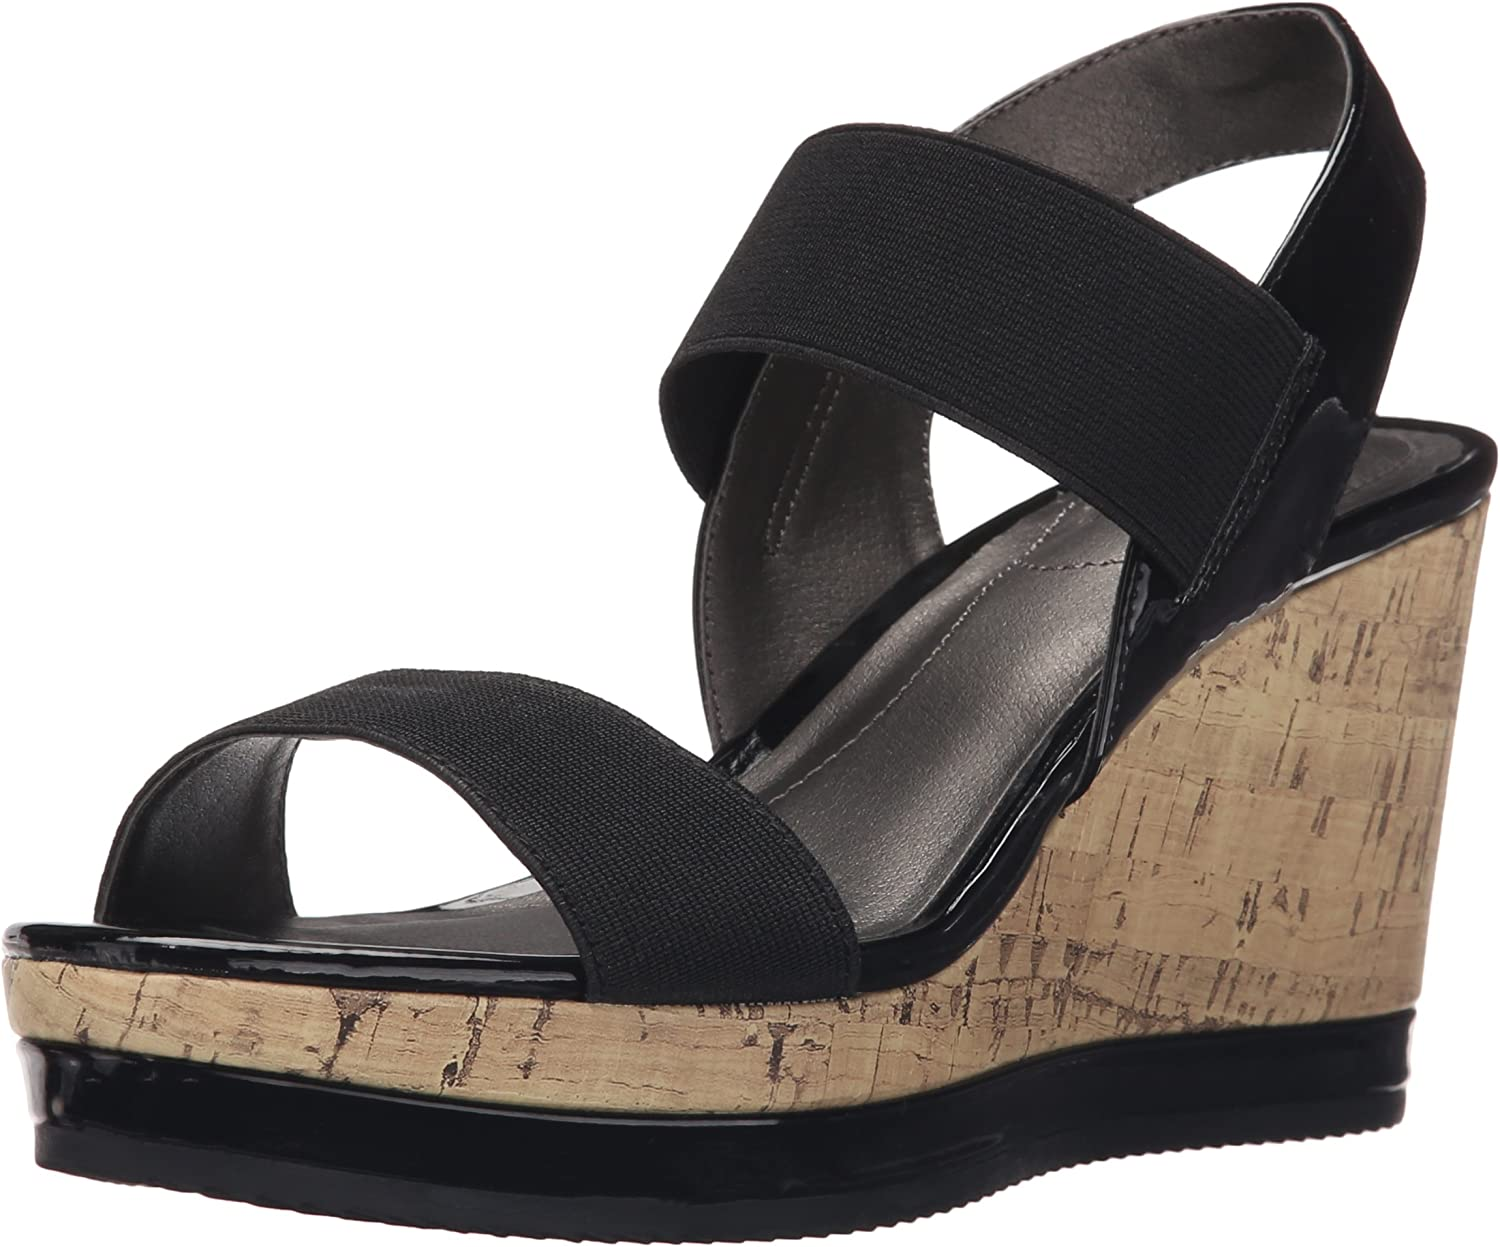 LifeStride Women's Ellusive Wedge Sandal